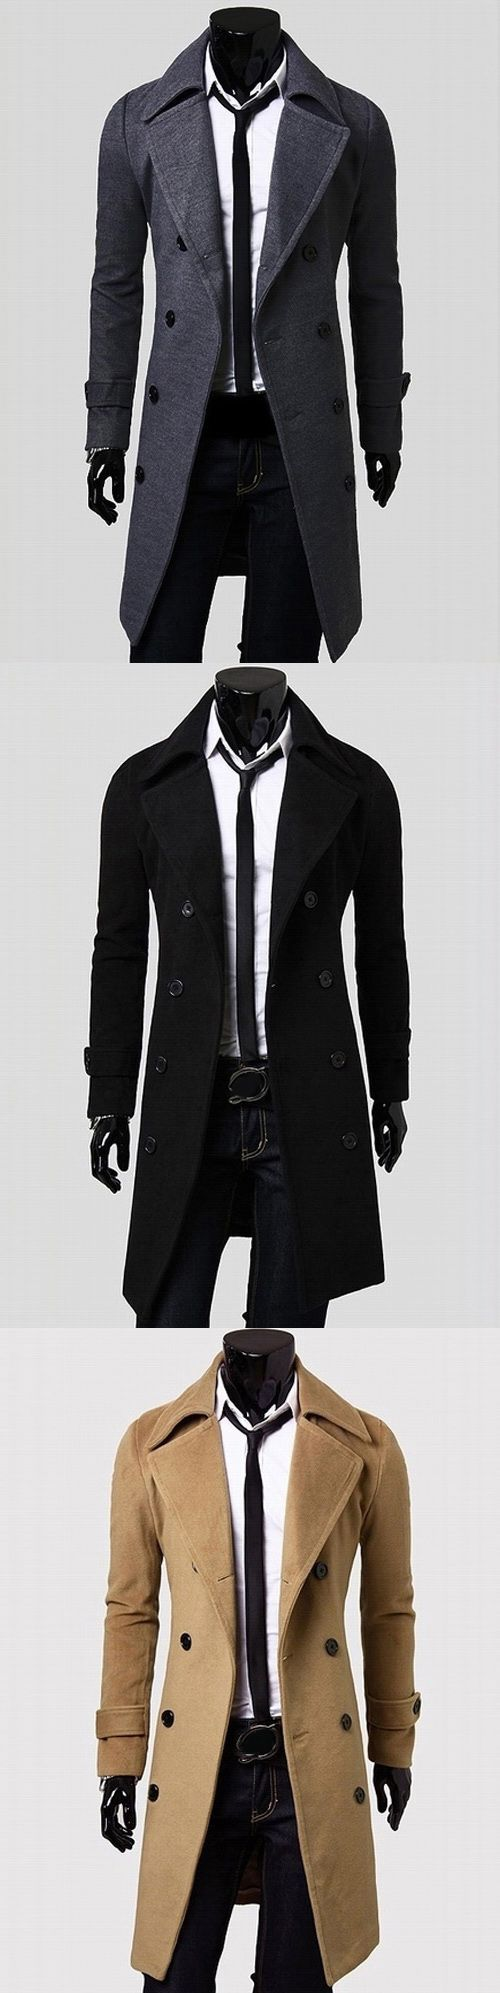 $16.31,Double Breasted Overcoat with Side Pockets | rosewholesale, rosewholesale for men, coat, overcoat | #rosewholesale #coat #mensoutfits